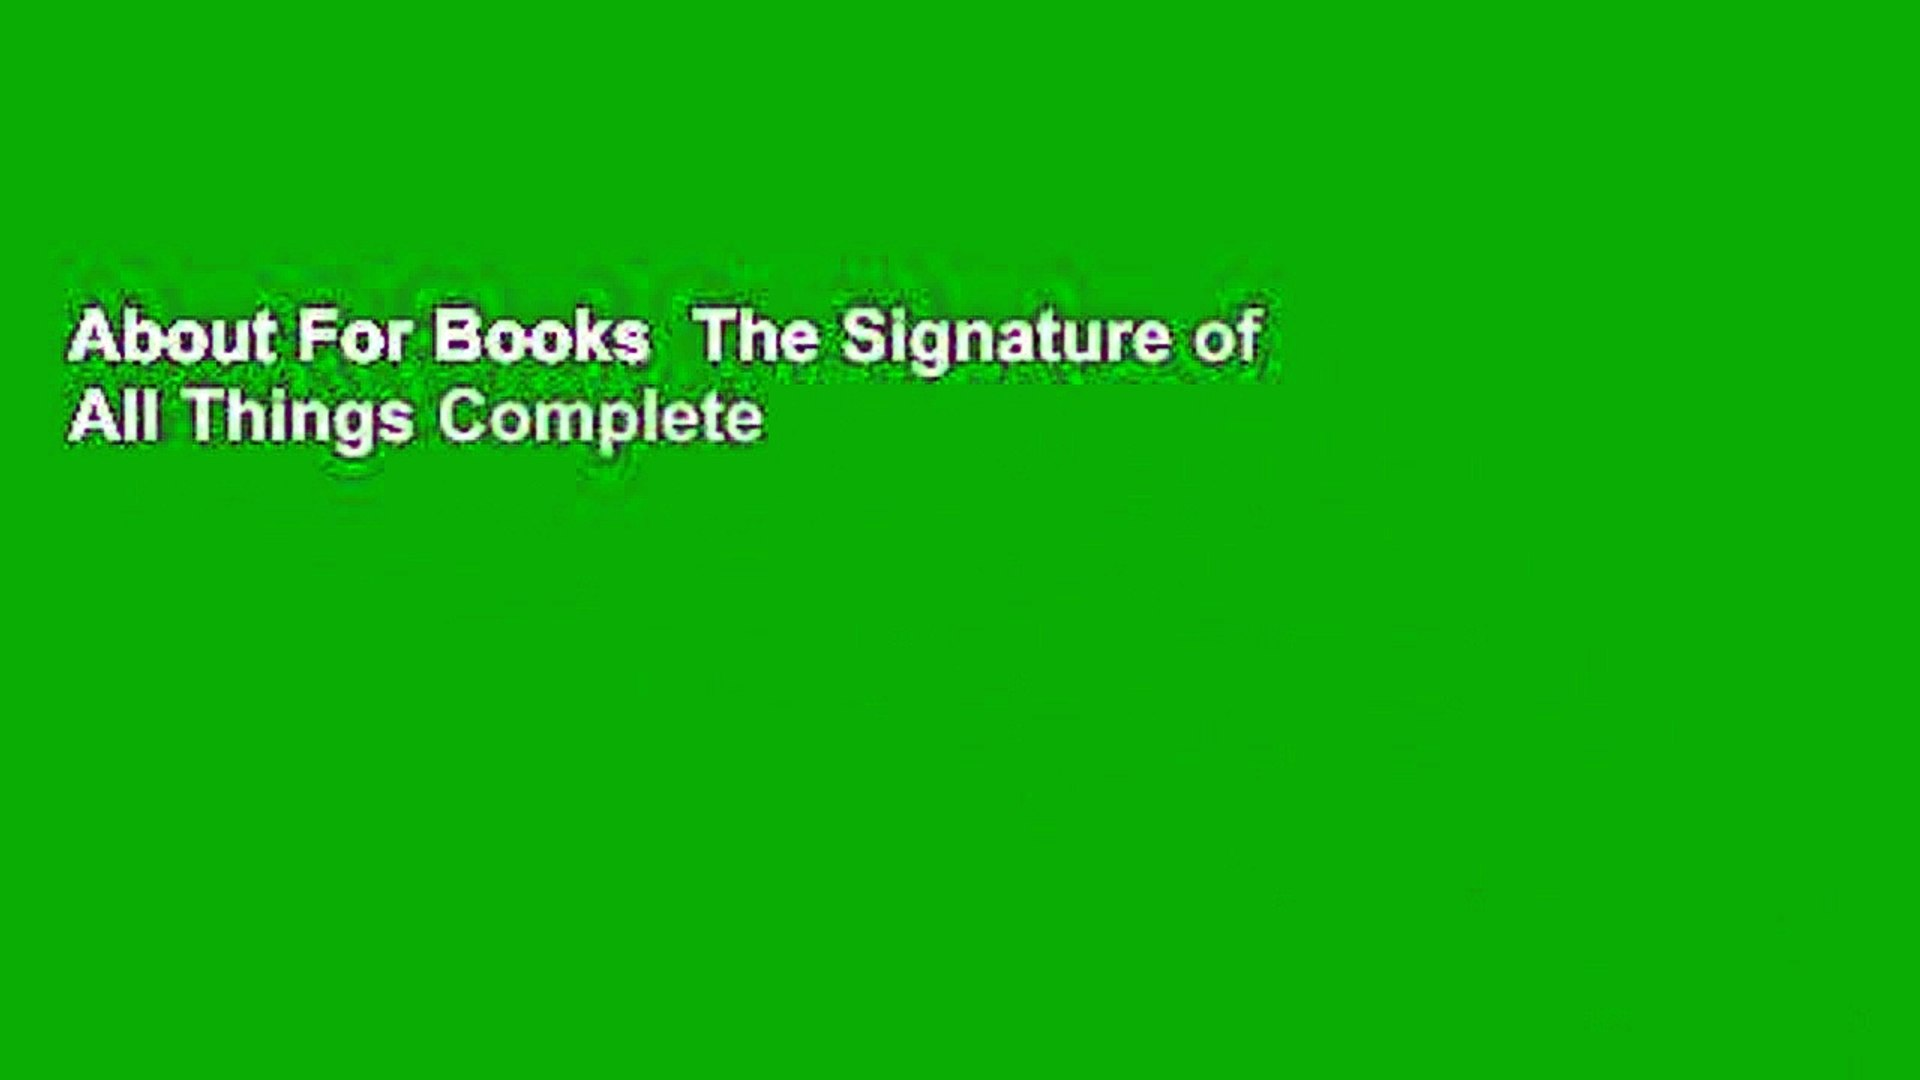 About For Books  The Signature of All Things Complete